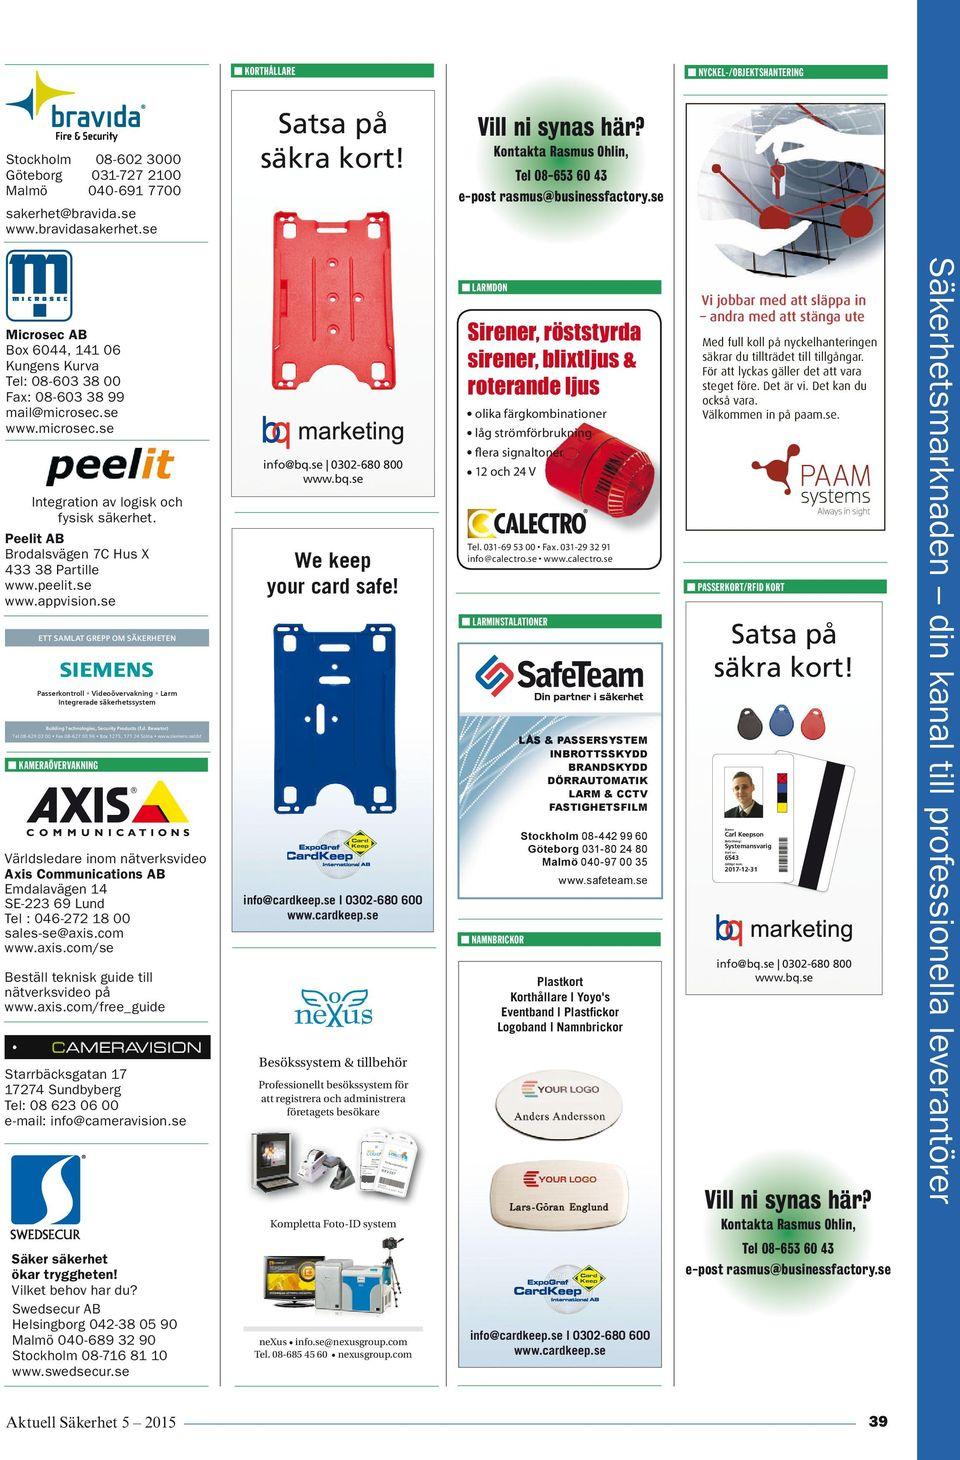 axis.com/free_guide Starrbäcksgatan 17 17274 Sundbyberg Tel: 08 623 06 00 e-mail: info@cameravisi.se We keep your card safe! info@cardkeep.